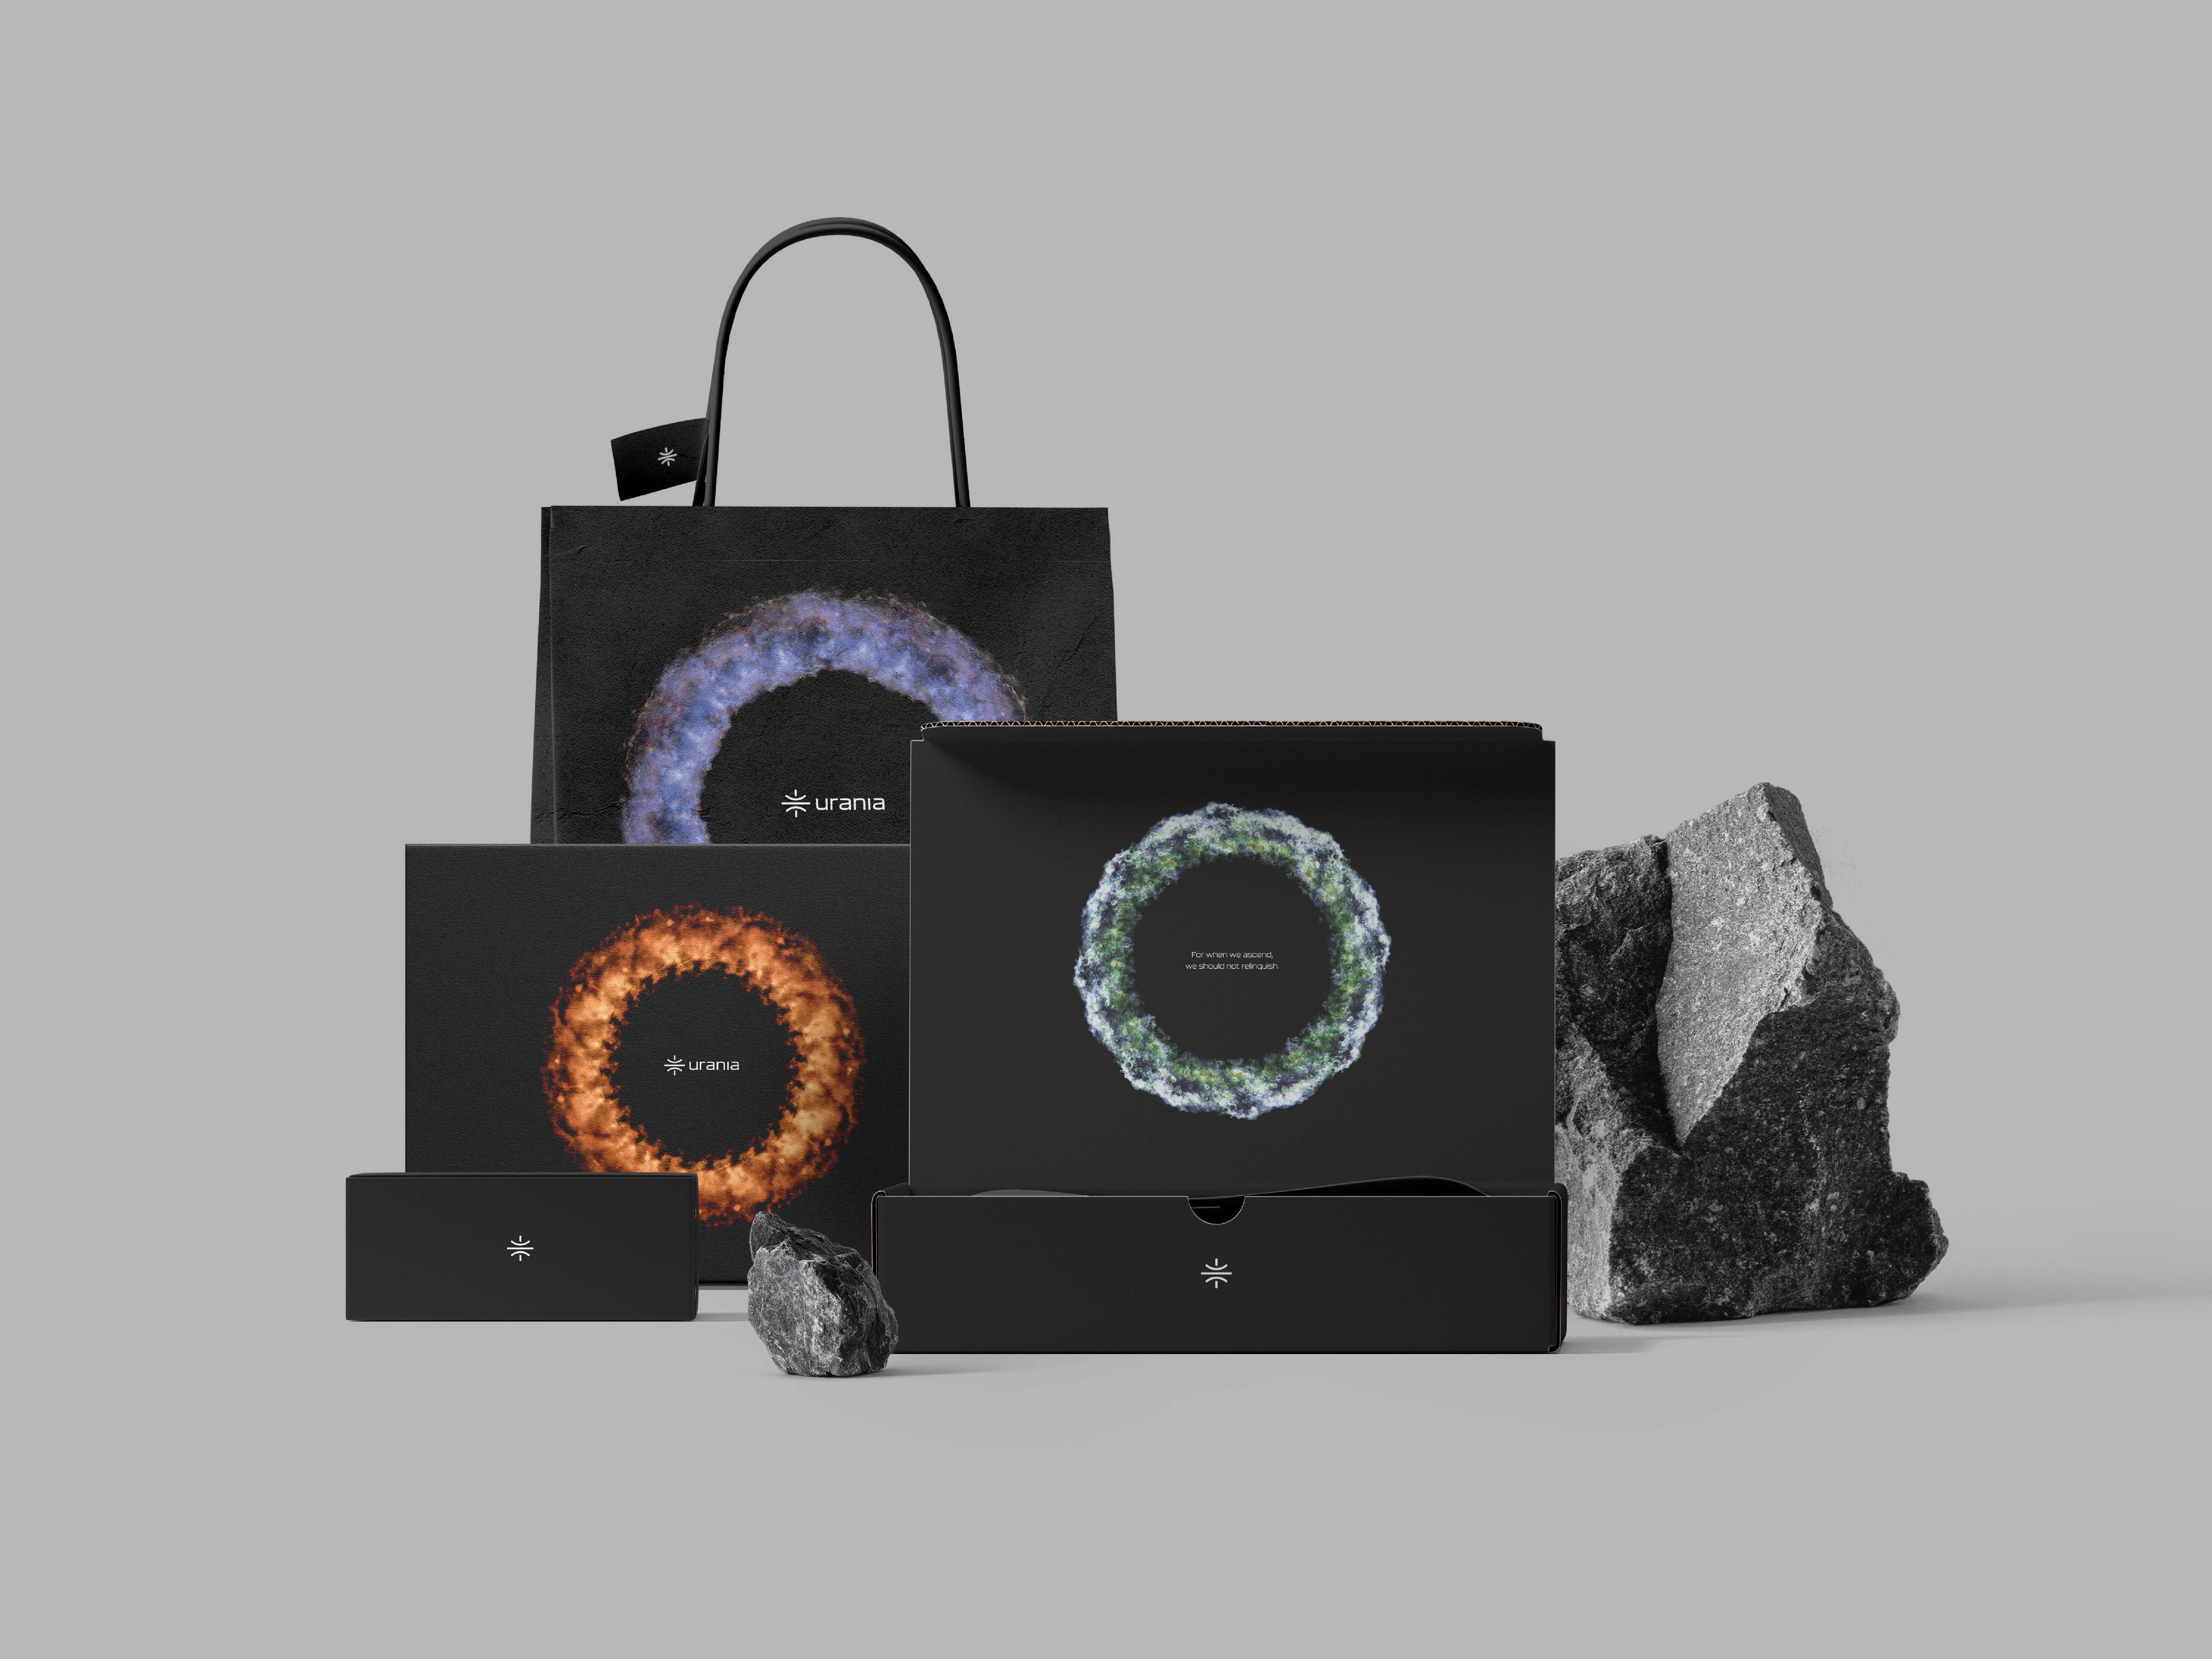 Lewis France Designs Subscription Box Service for an Interplanetary Society